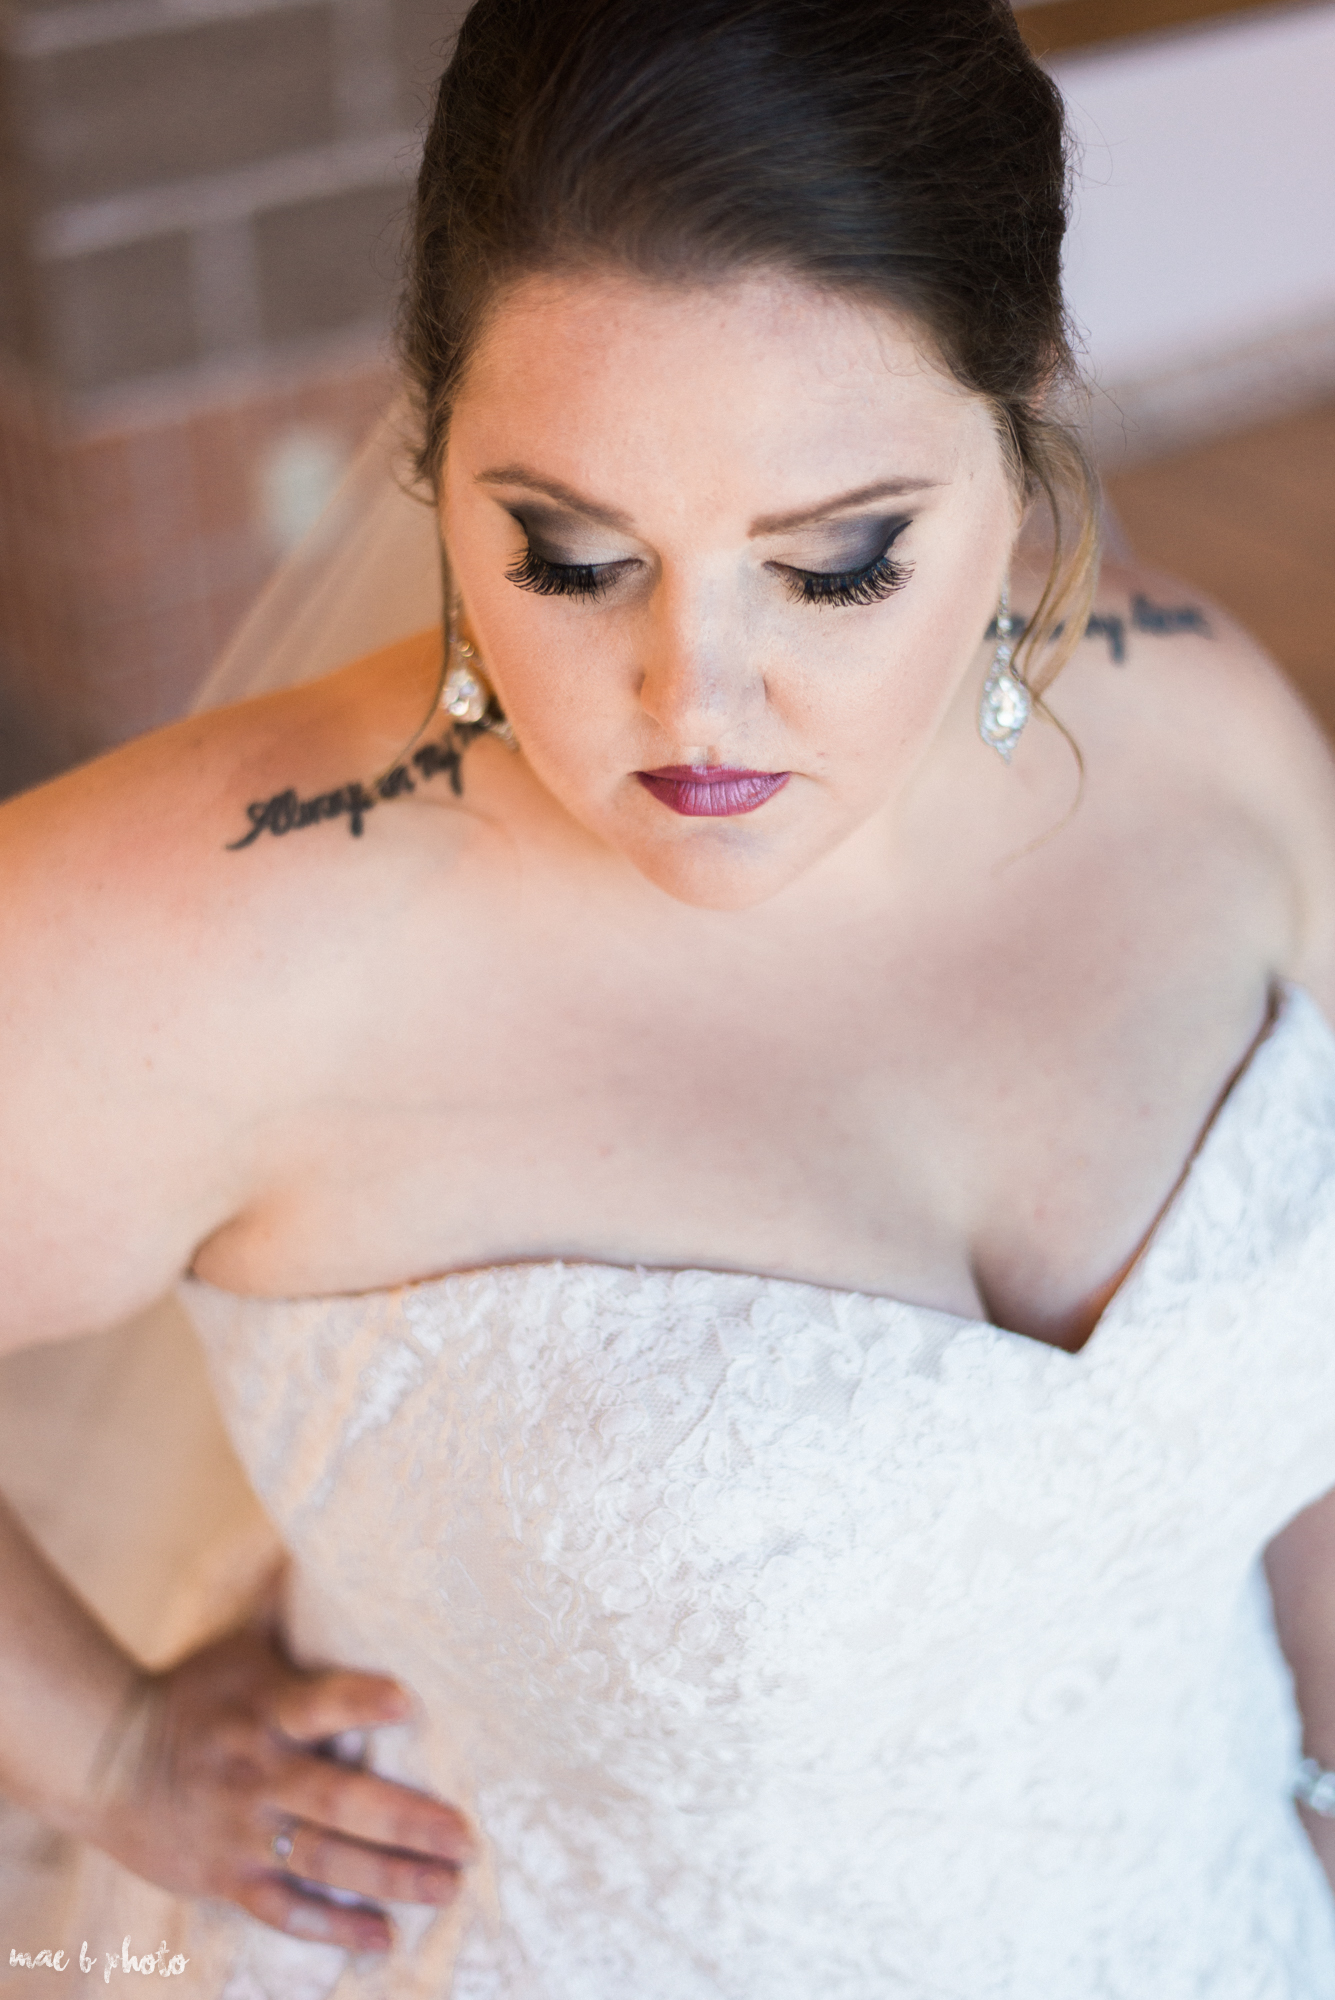 Amber & Kyle's Rustic Barn Wedding at SNPJ in Enon Valley, PA by Mae B Photo-58.jpg